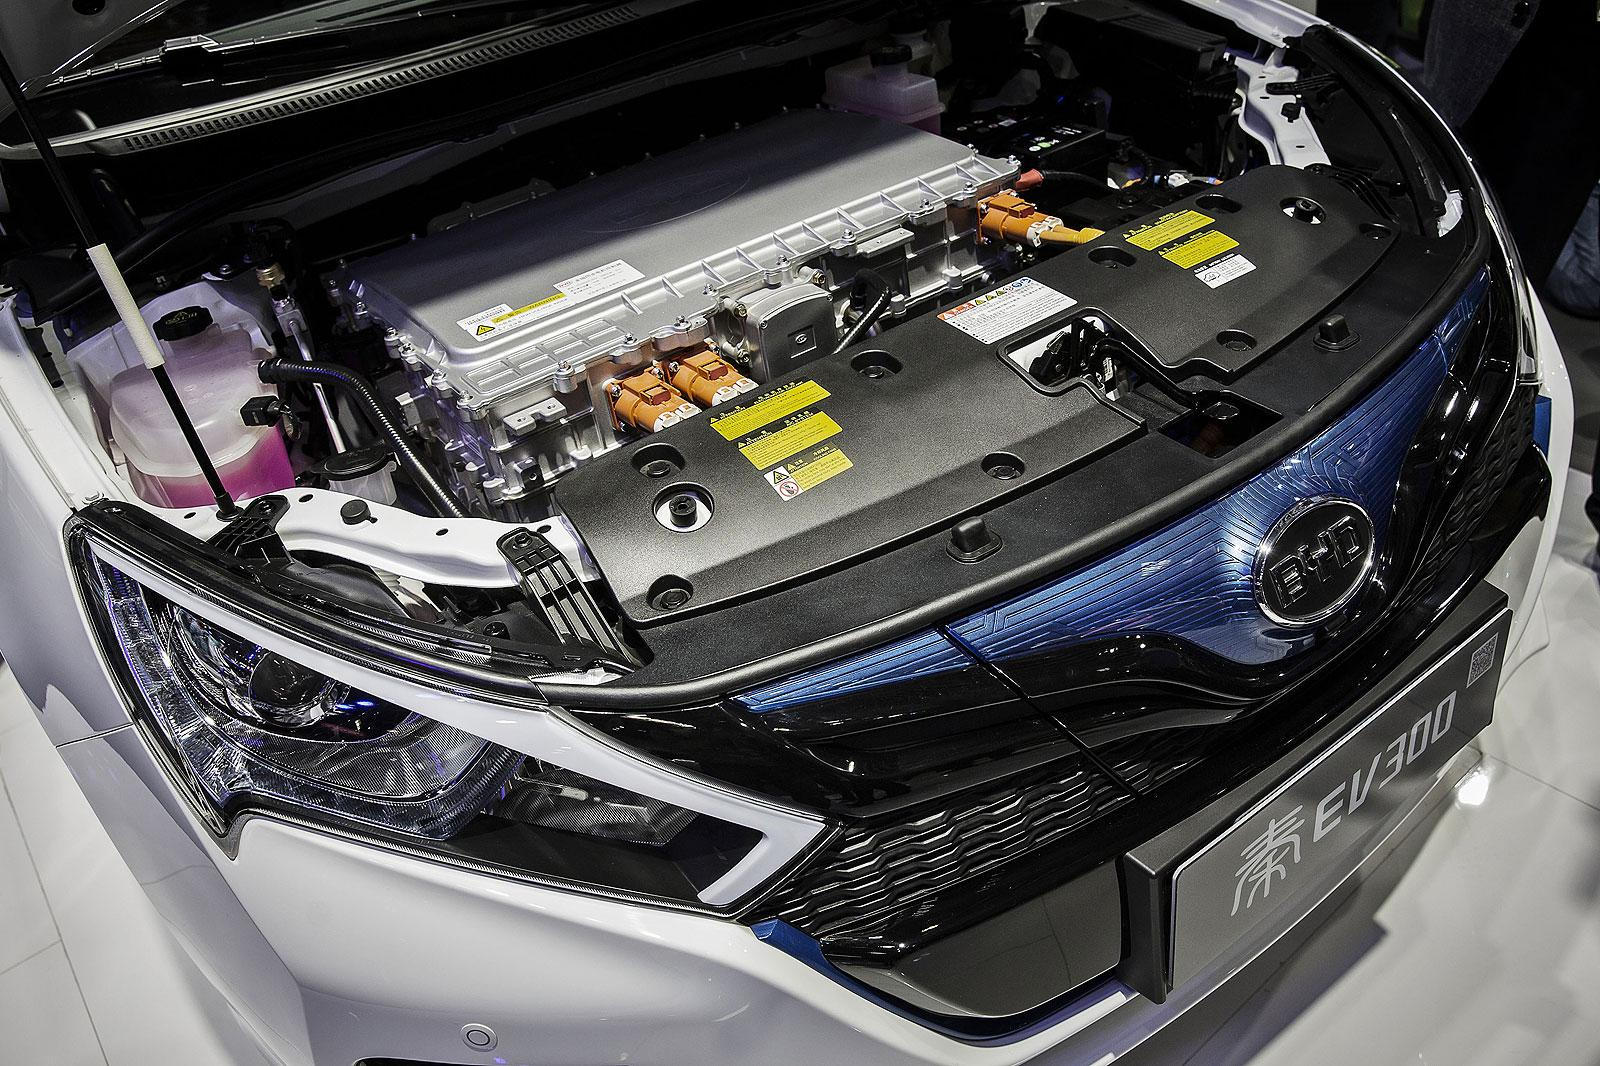 Samsung seeks stake in China's BYD to boost chip business